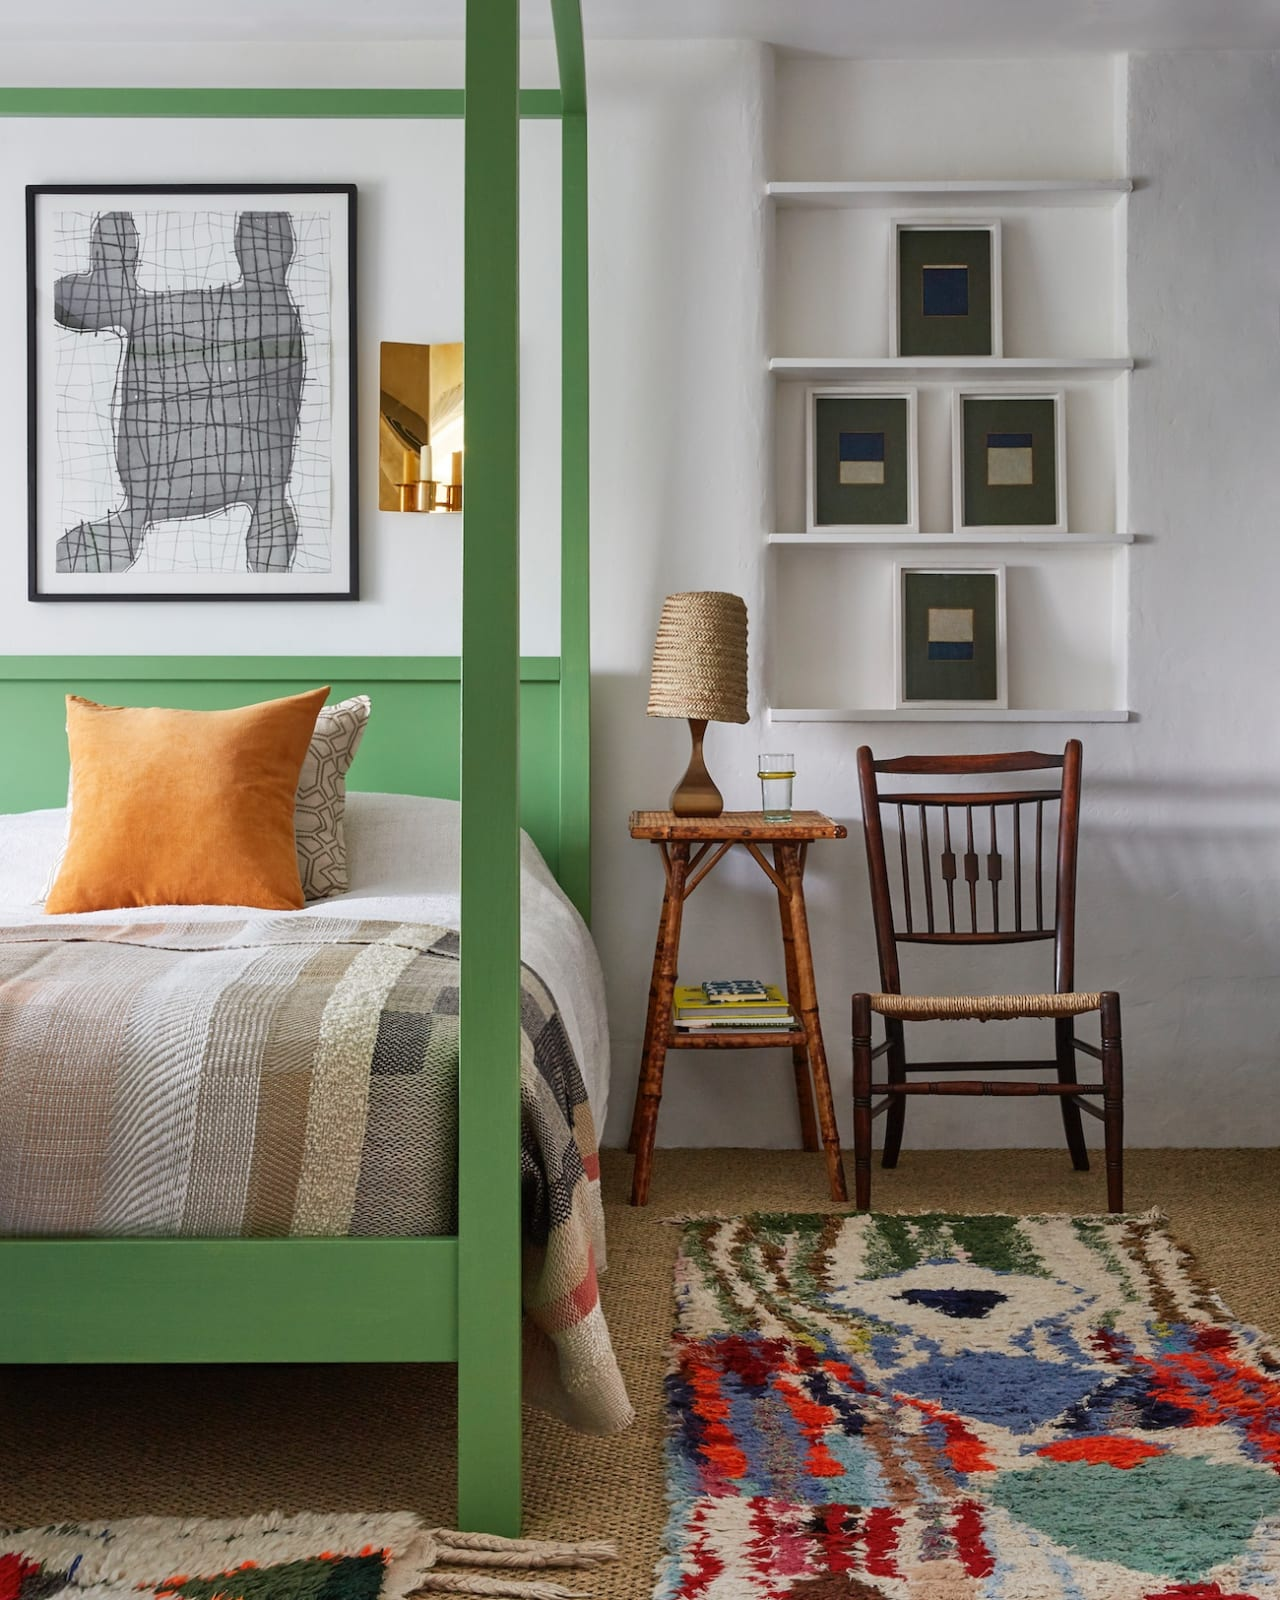 Tobias resides in a Habitat four-poster bed – given a grass green finish – with boucherouite Moroccan rugs on the floor in one of the two bedrooms upstairs.